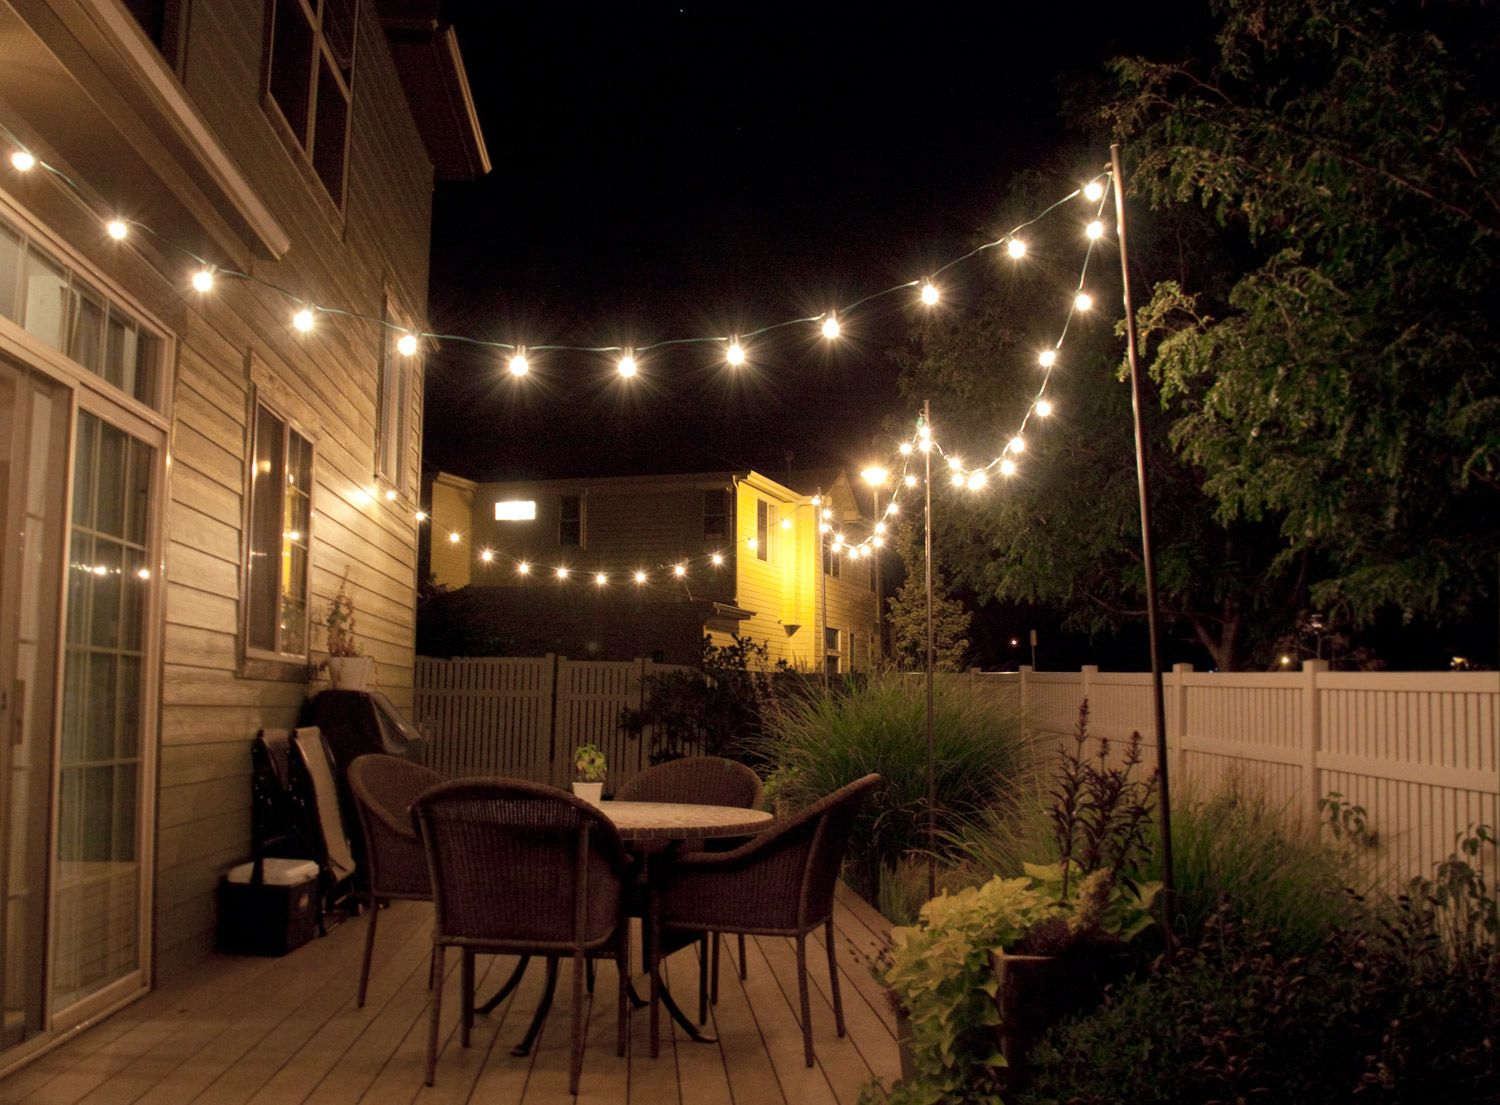 Patio String Lights Fair How To Make Inexpensive Poles To Hang String Lights On  Café Style Design Ideas